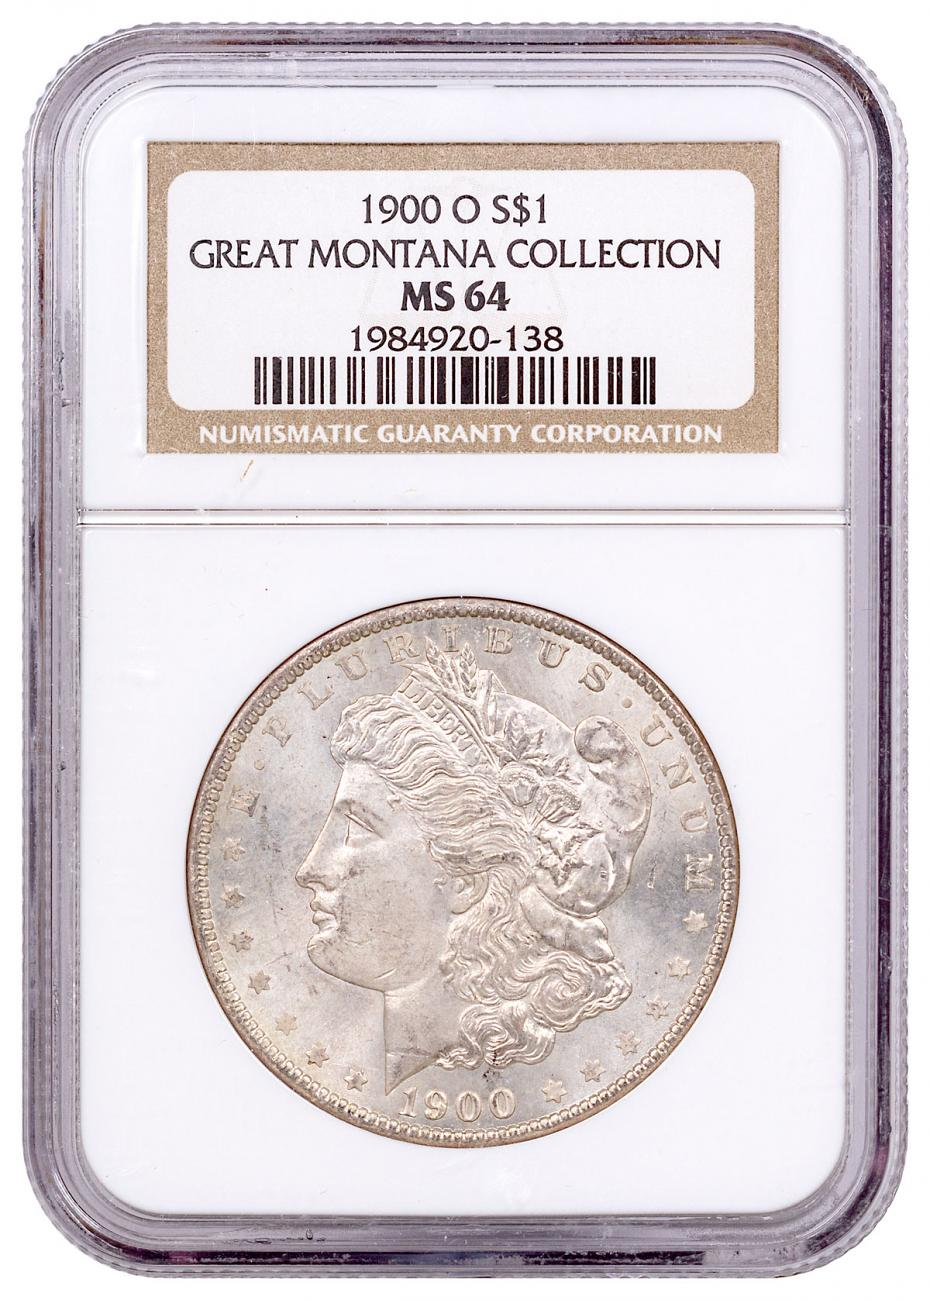 1900-O Morgan Silver Dollar From the Great Montana Collection NGC MS64